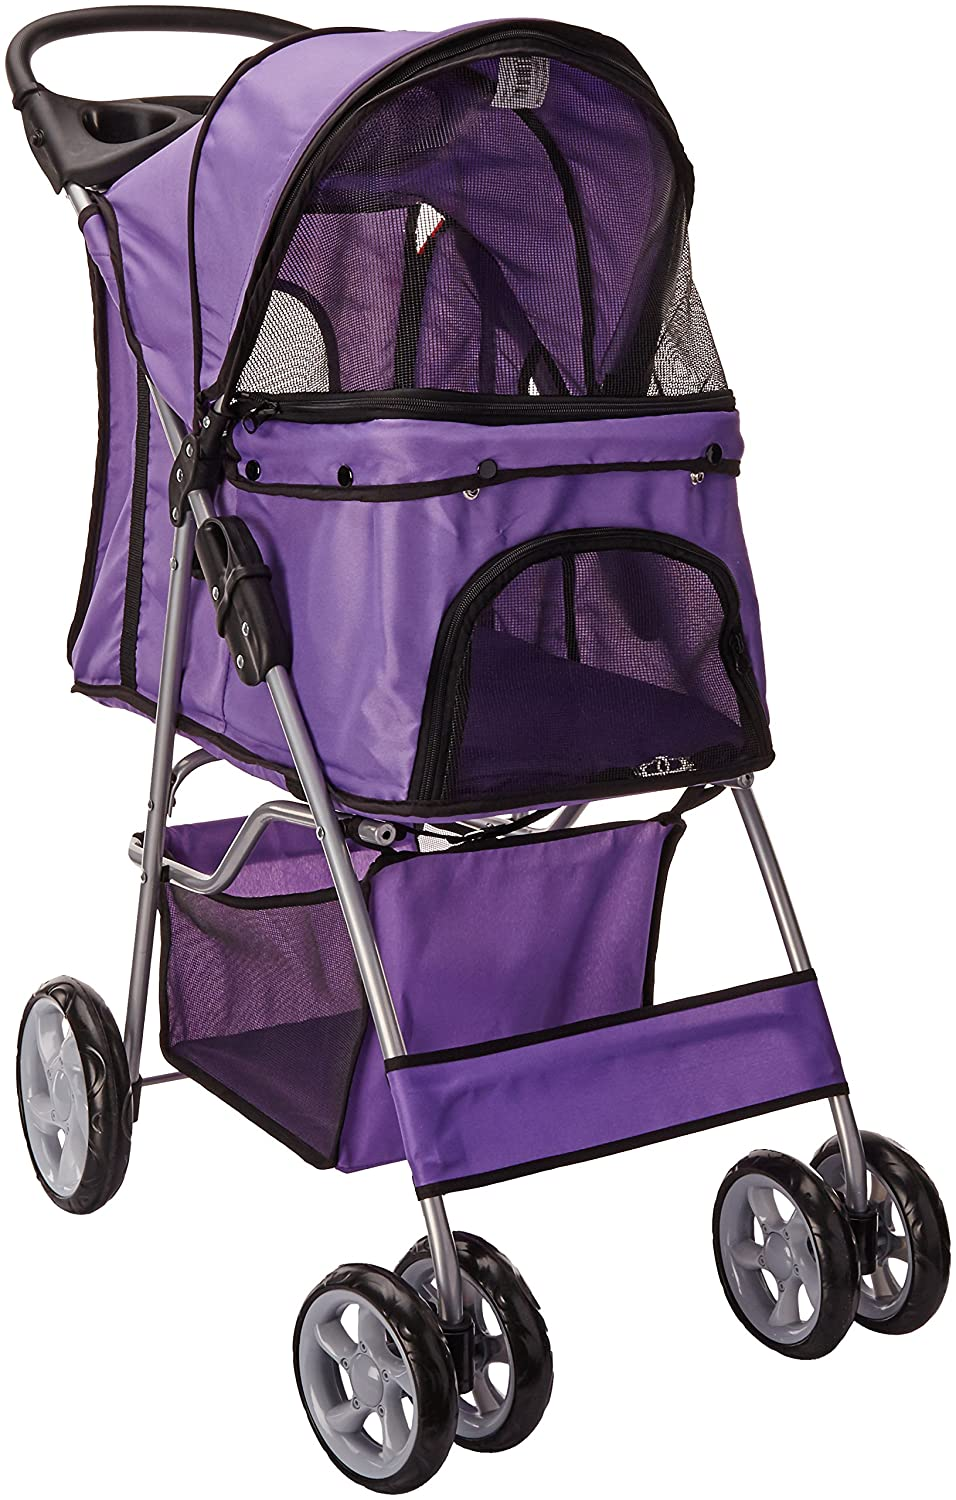 Stroller-cane Baby Care GT4: photos, review, pros and cons of the model, customer reviews 44